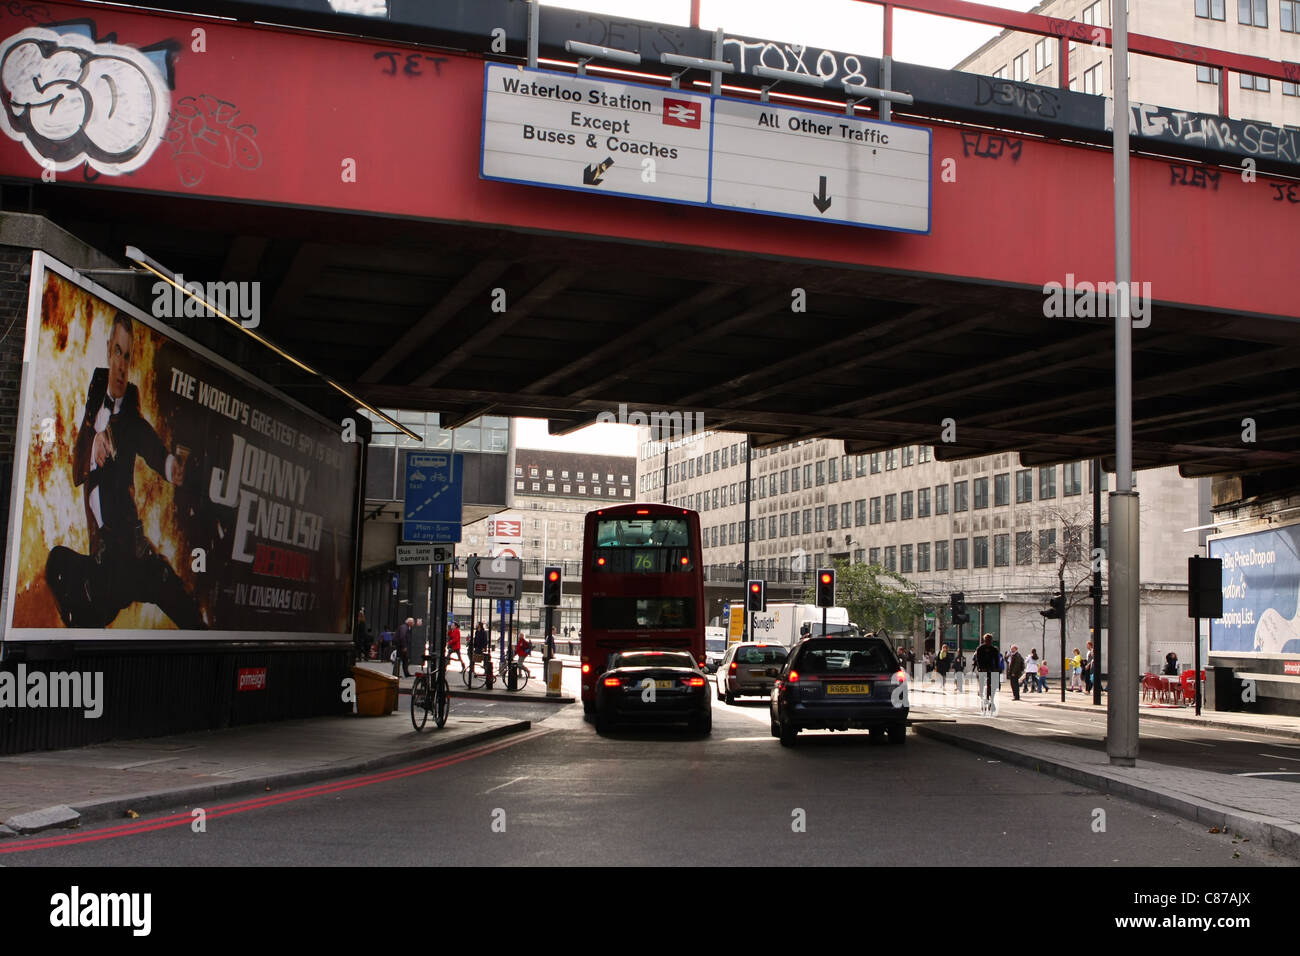 a bus and cars waiting under a bridge for traffic lights to change from red to green Stock Photo